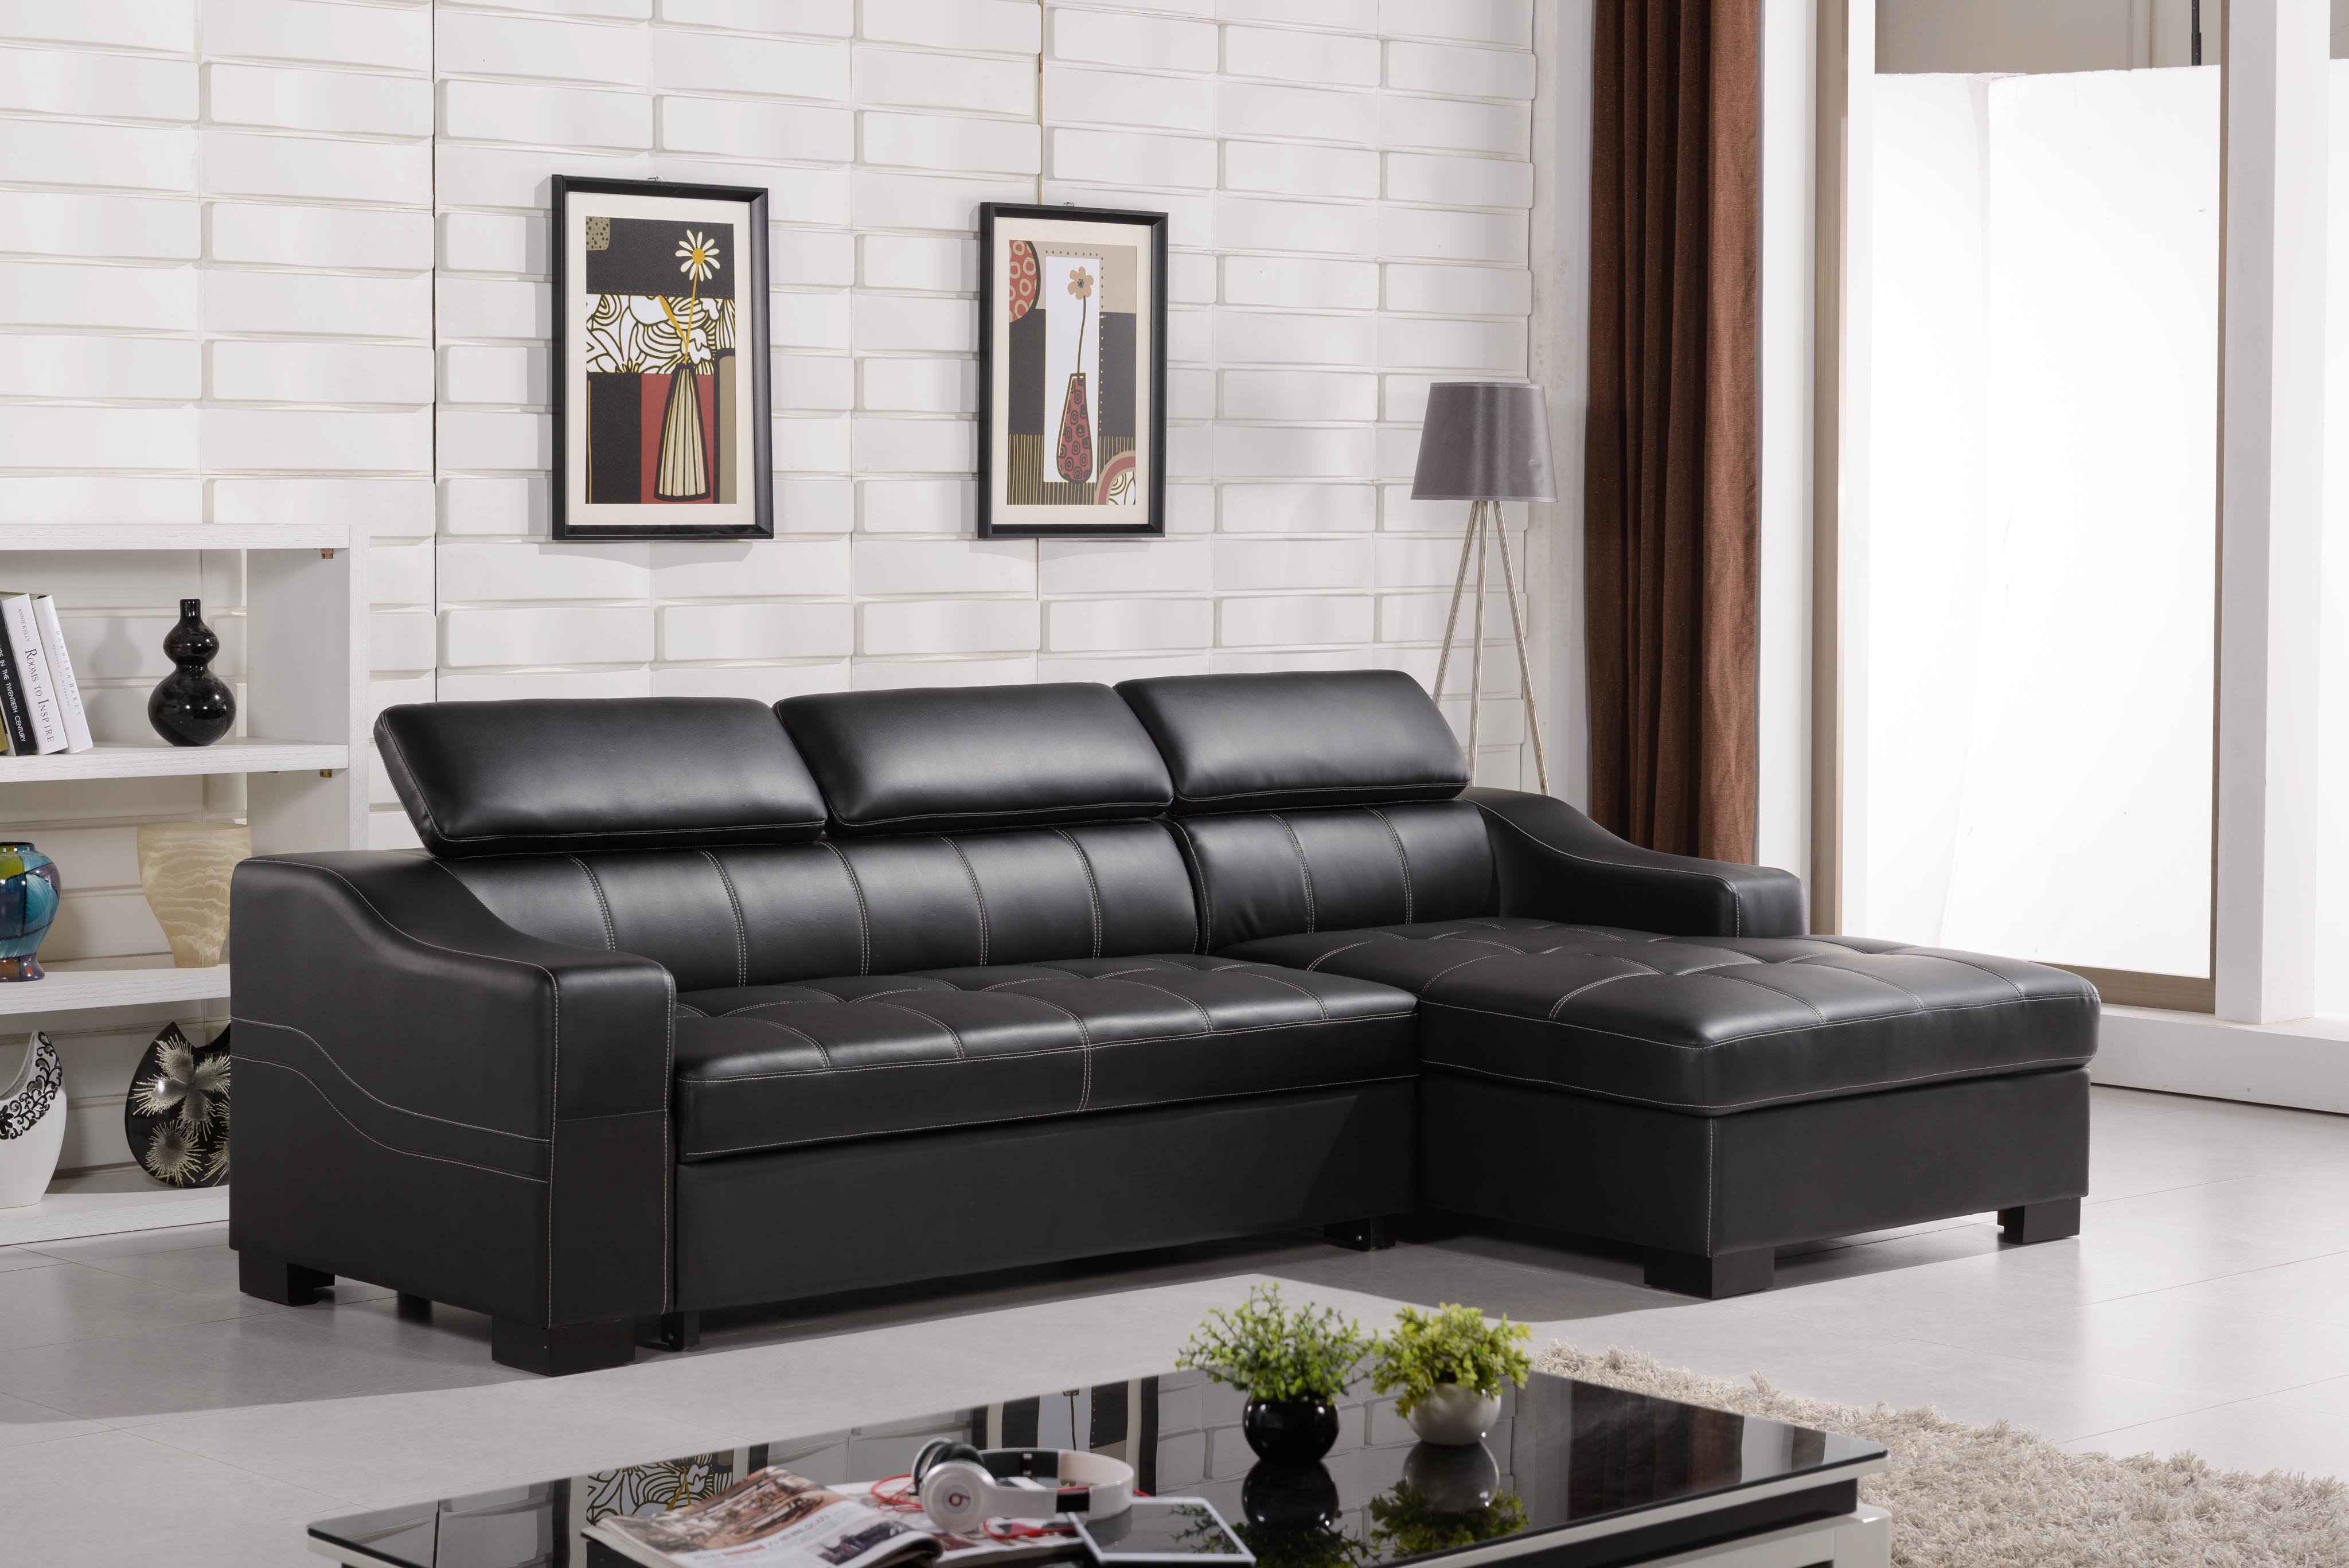 Couches Promotion Modern Sofas That Turn Into Beds Homesfeed